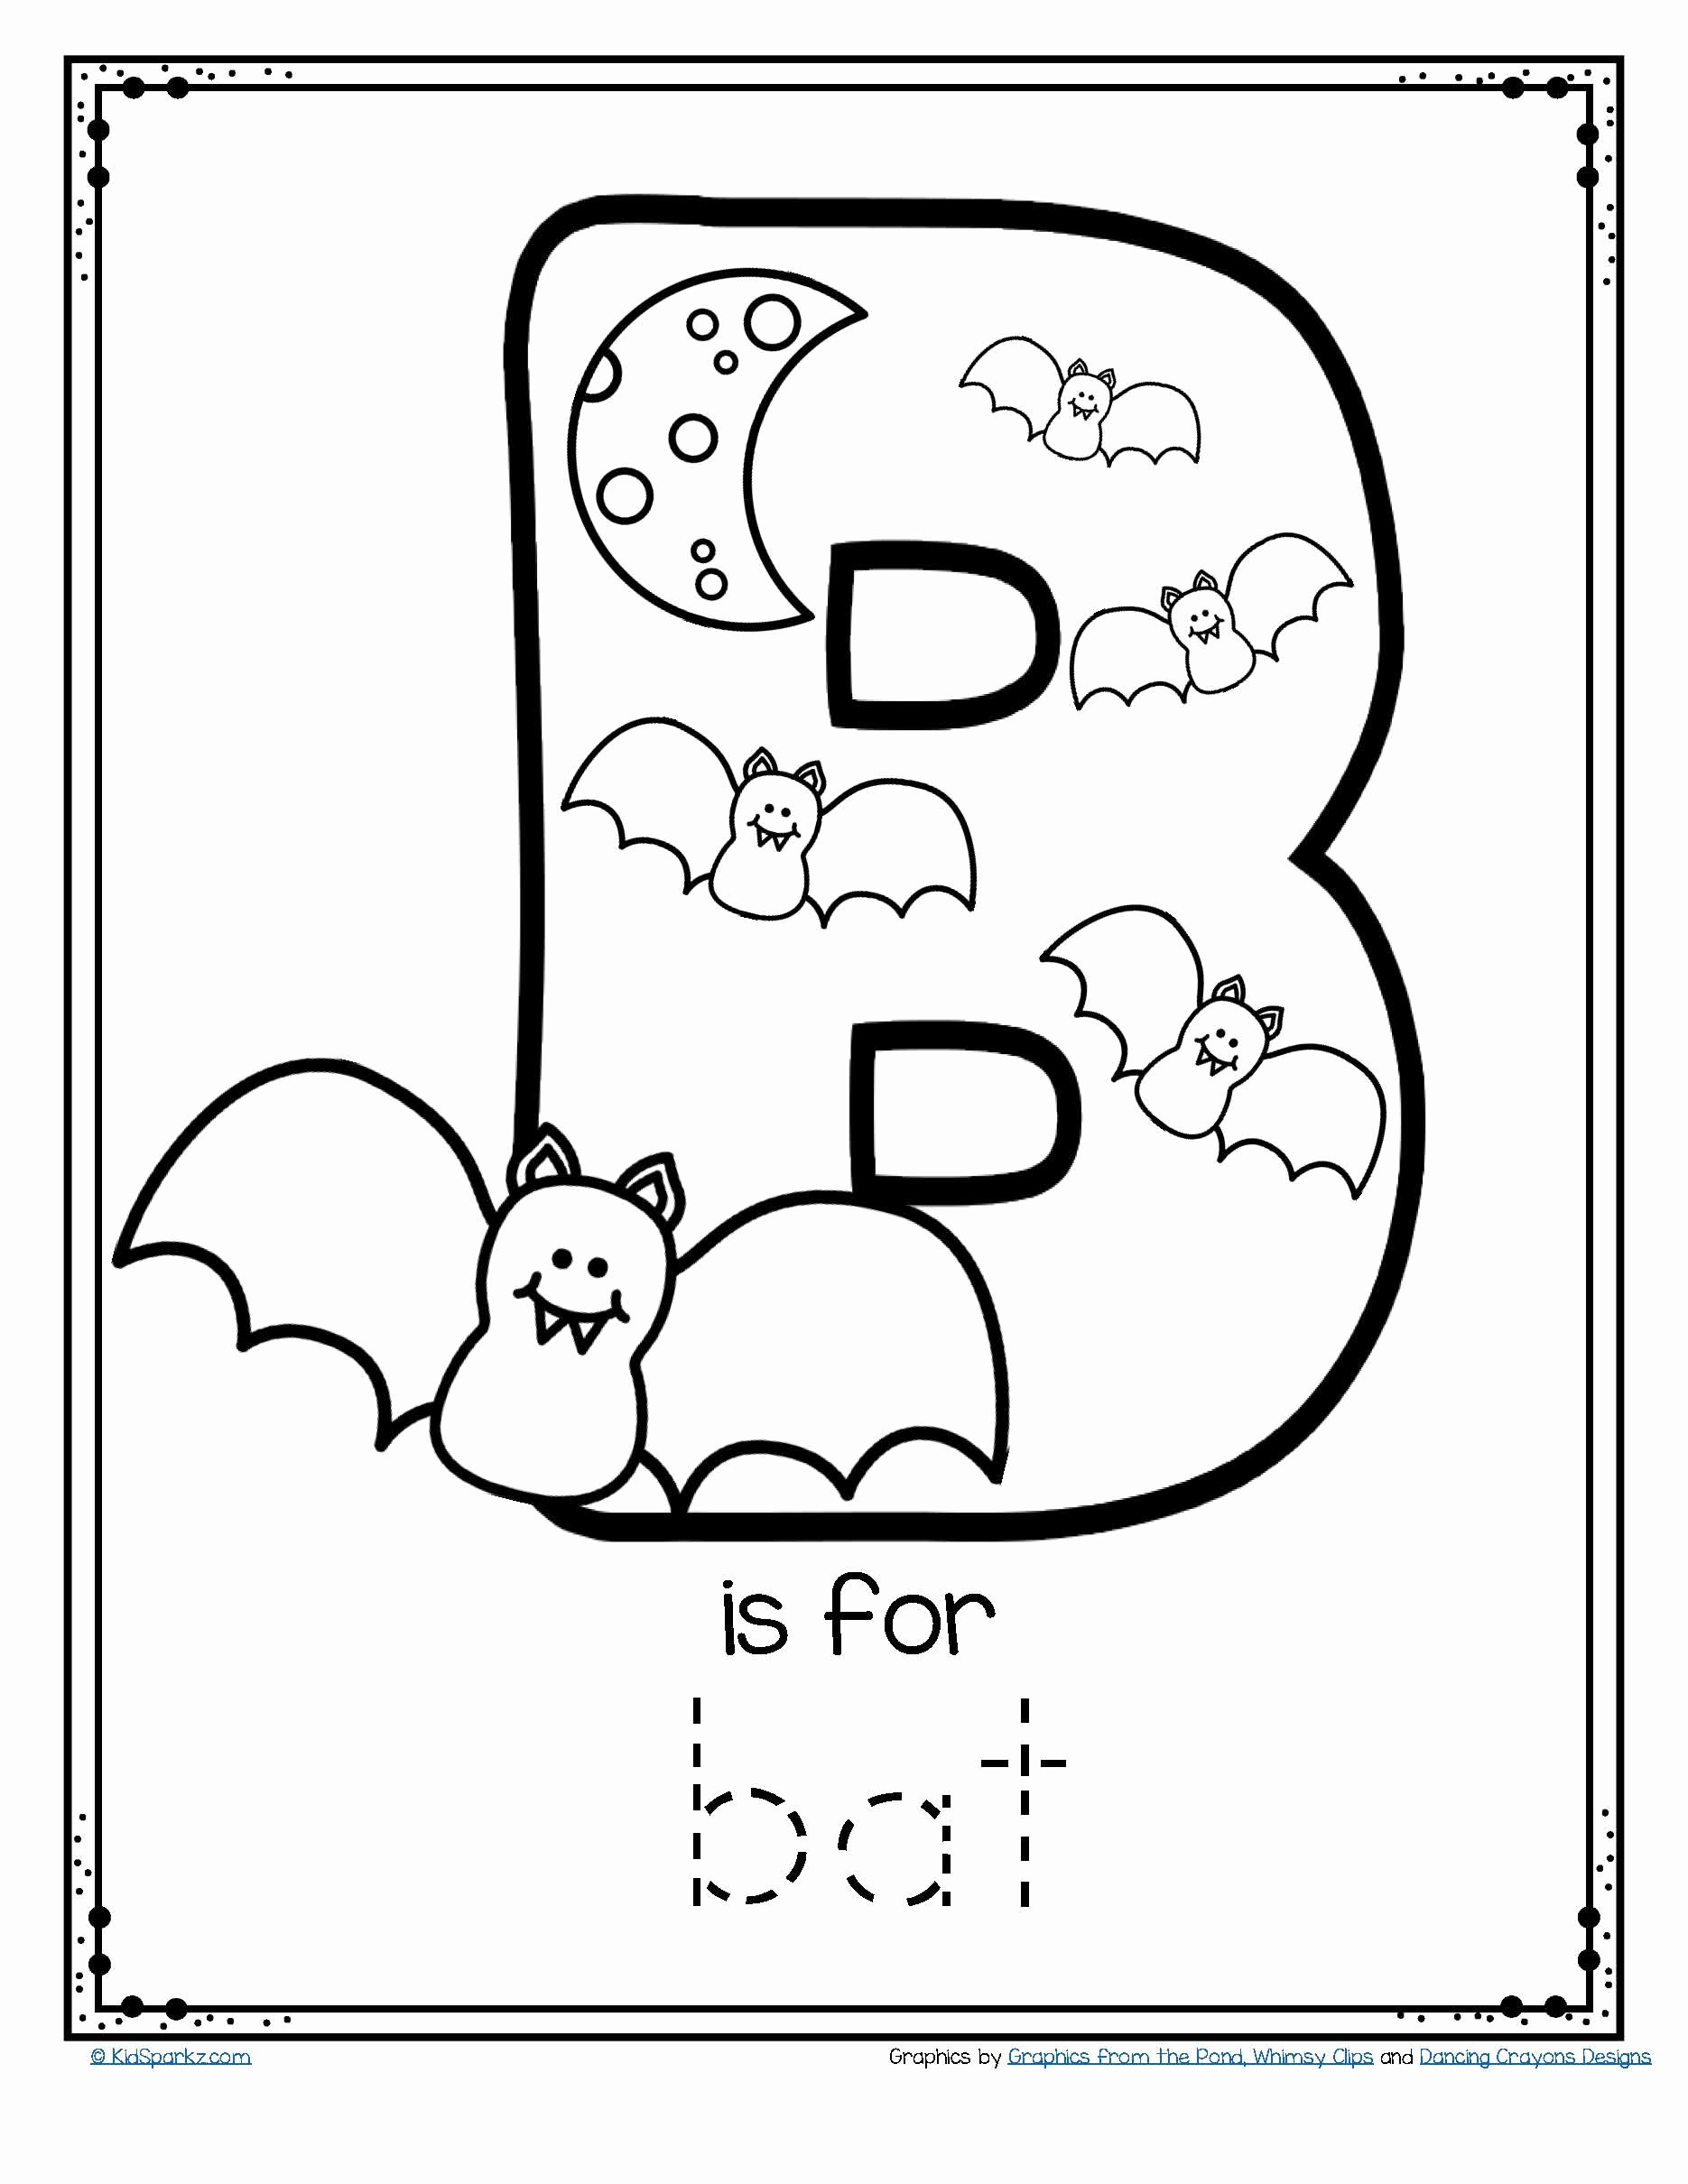 Letter A Printable Worksheets for Preschoolers Awesome Worksheets Free Alphabet Tracing and Coloring Printable is